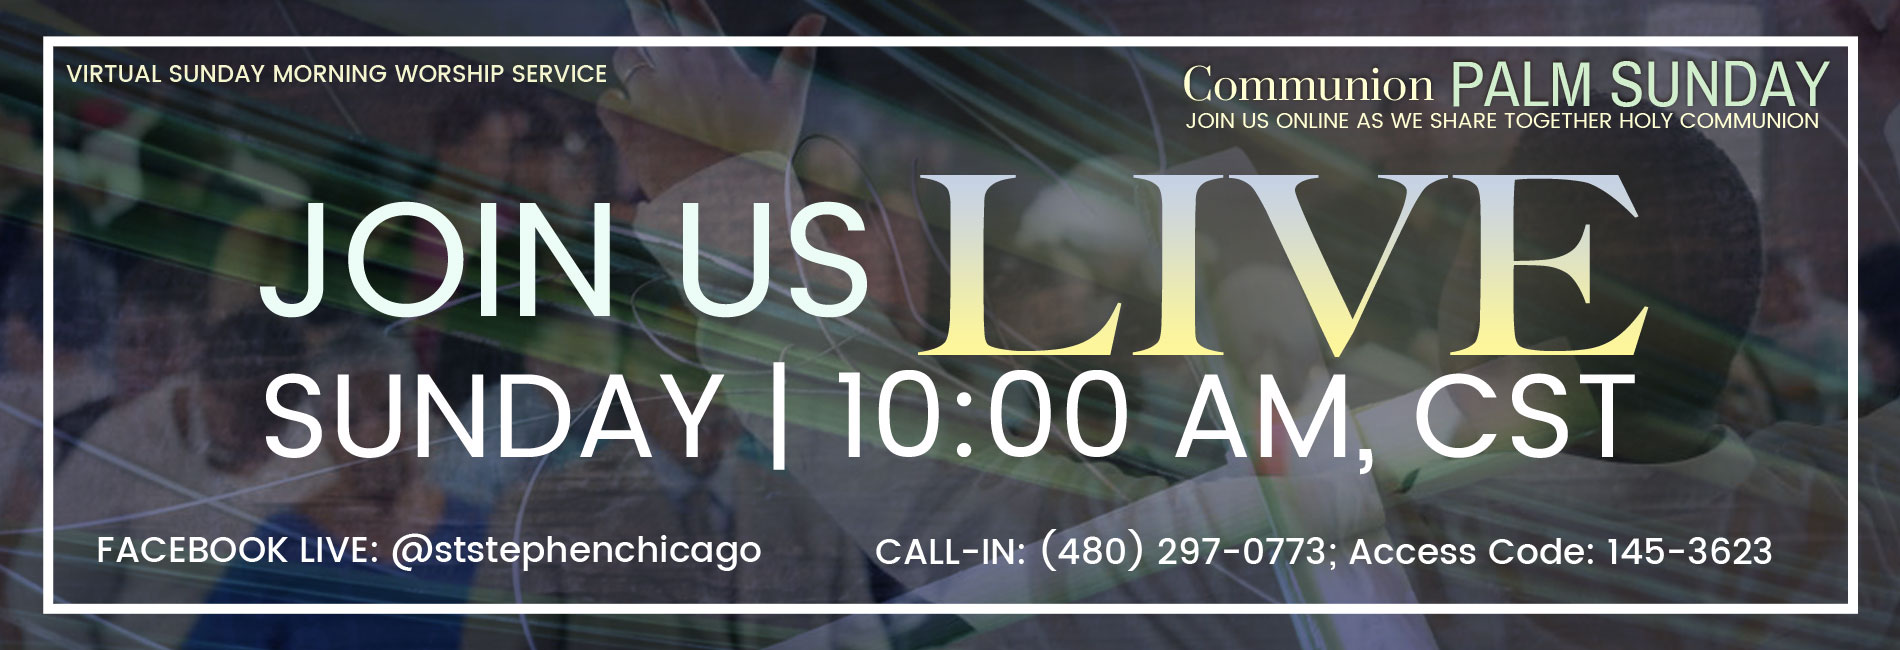 Online Communion Palm Sunday